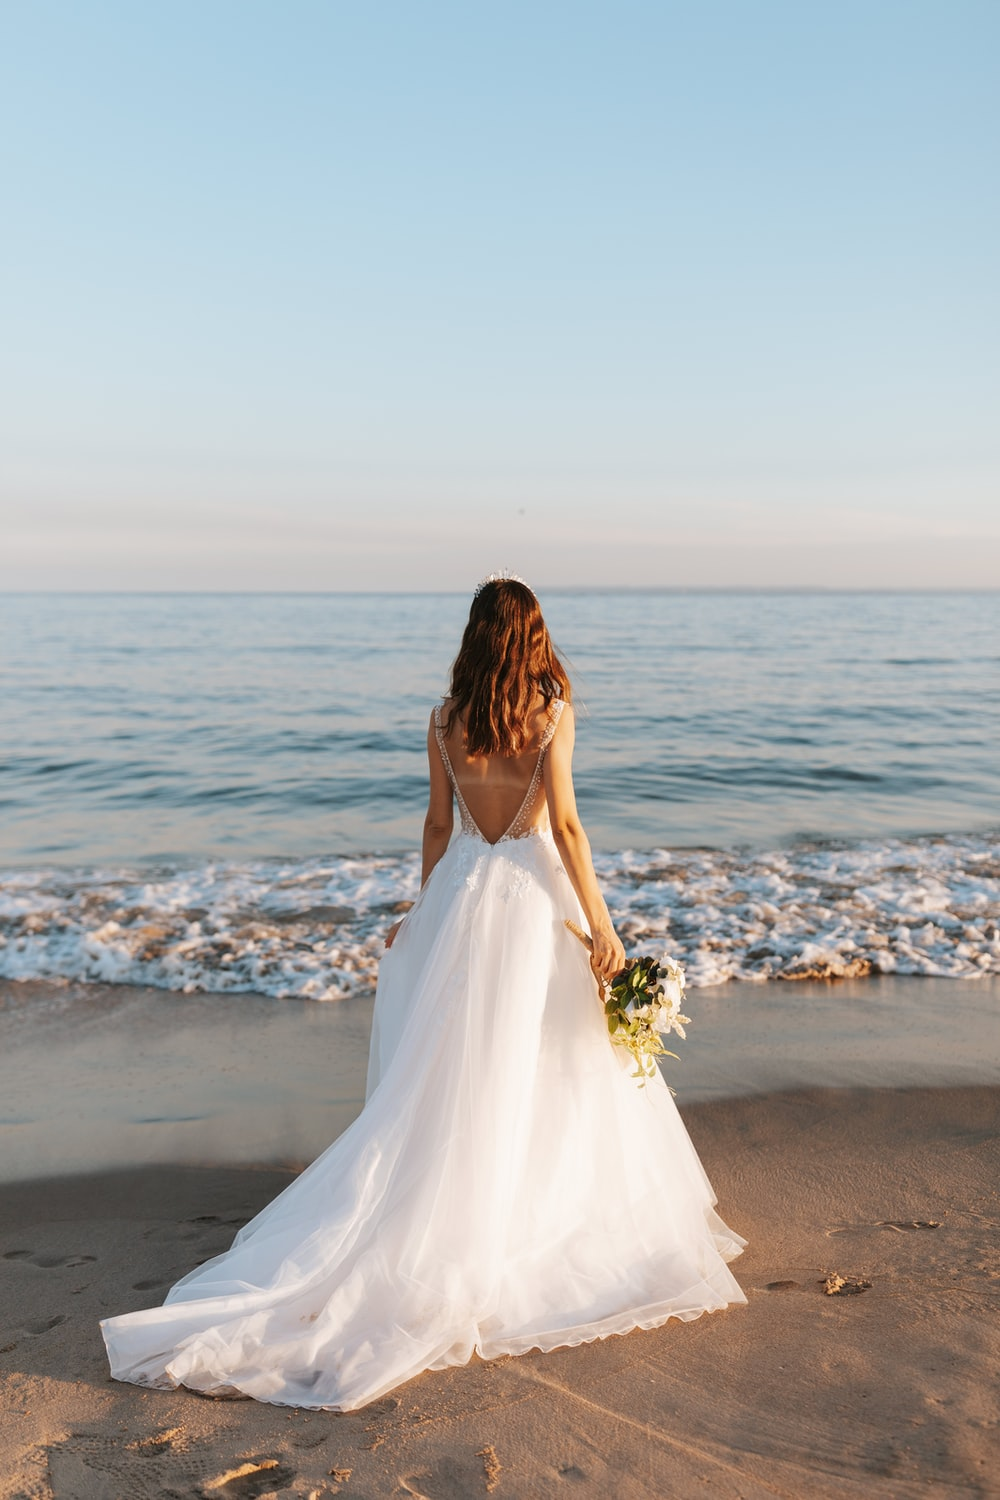 woman in white wedding dress standing on beach during daytime